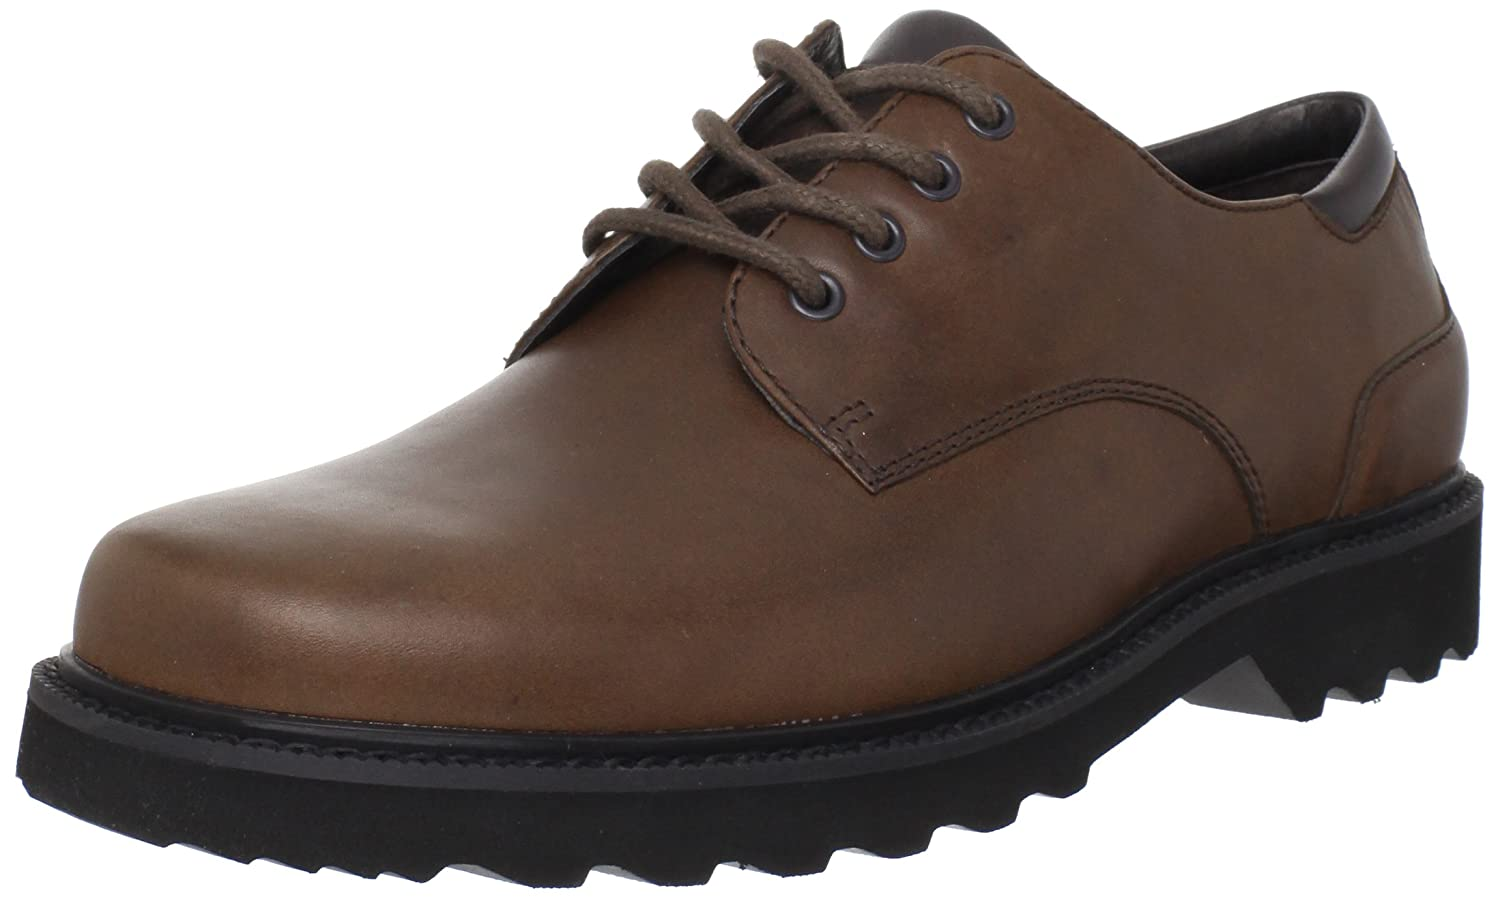 Rockport Men's Northfield Oxford Rockport Footwear K70011